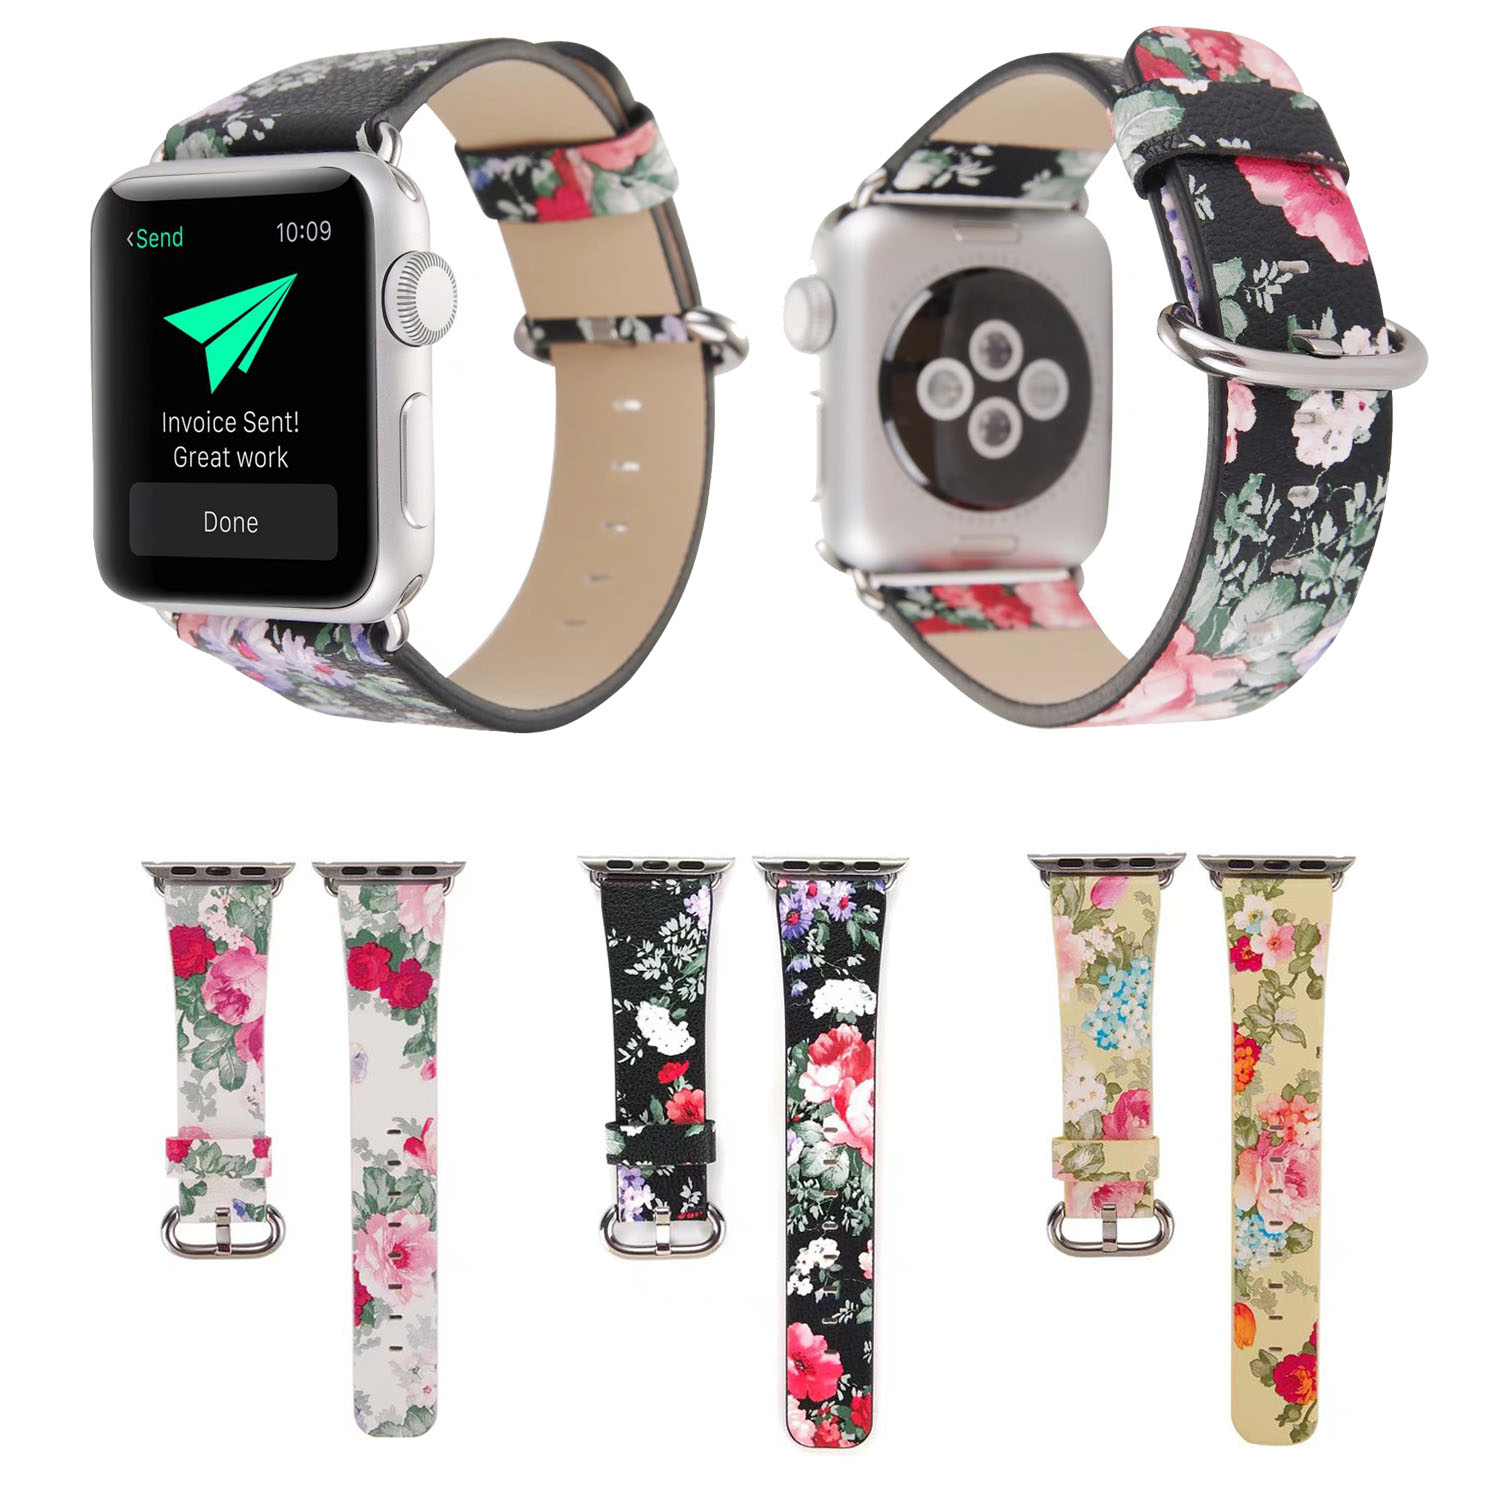 Traditional Flower Leather Strap for Apple Watch Series 3 2 1 Band 42mm 38mm Bracelet for iWatch Replacement Watchband смарт часы apple watch series 2 38mm